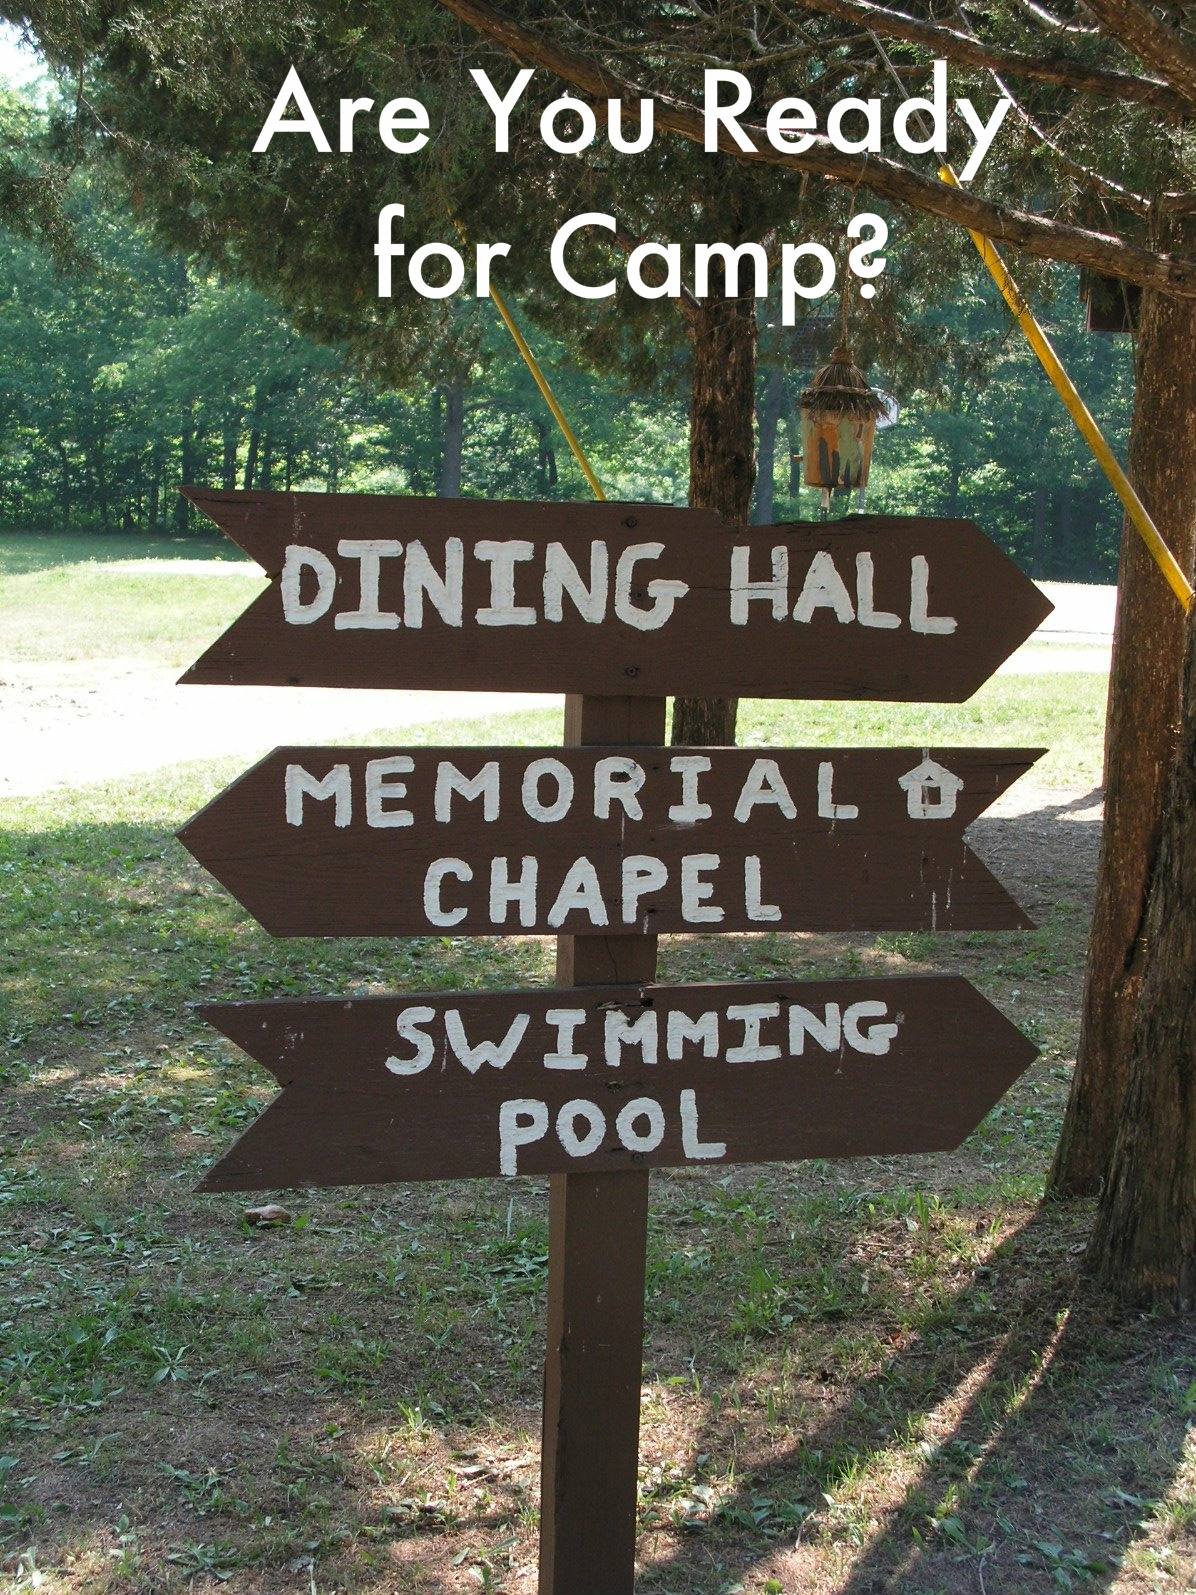 RETHINKING YOUTH MINISTRY: Are You Ready for Camp?